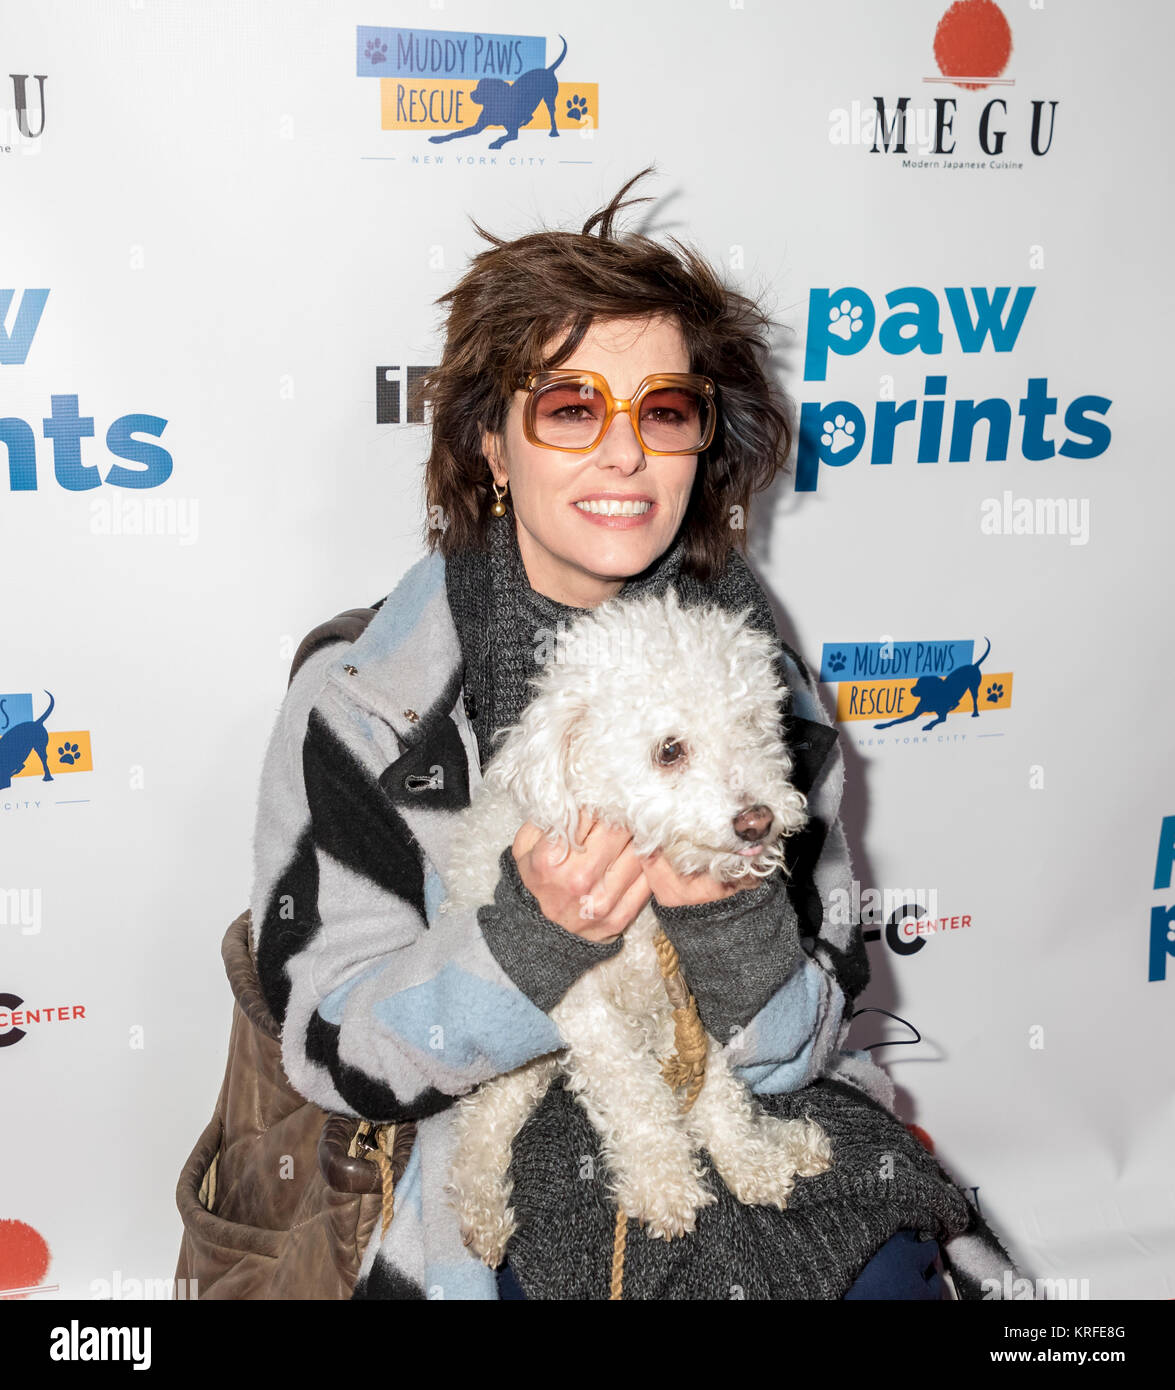 New York, NY, USA - December 19: Actress Parker Posey with her dog Gracie attend Paw Prints 1st Annual Paw-liday Stock Photo